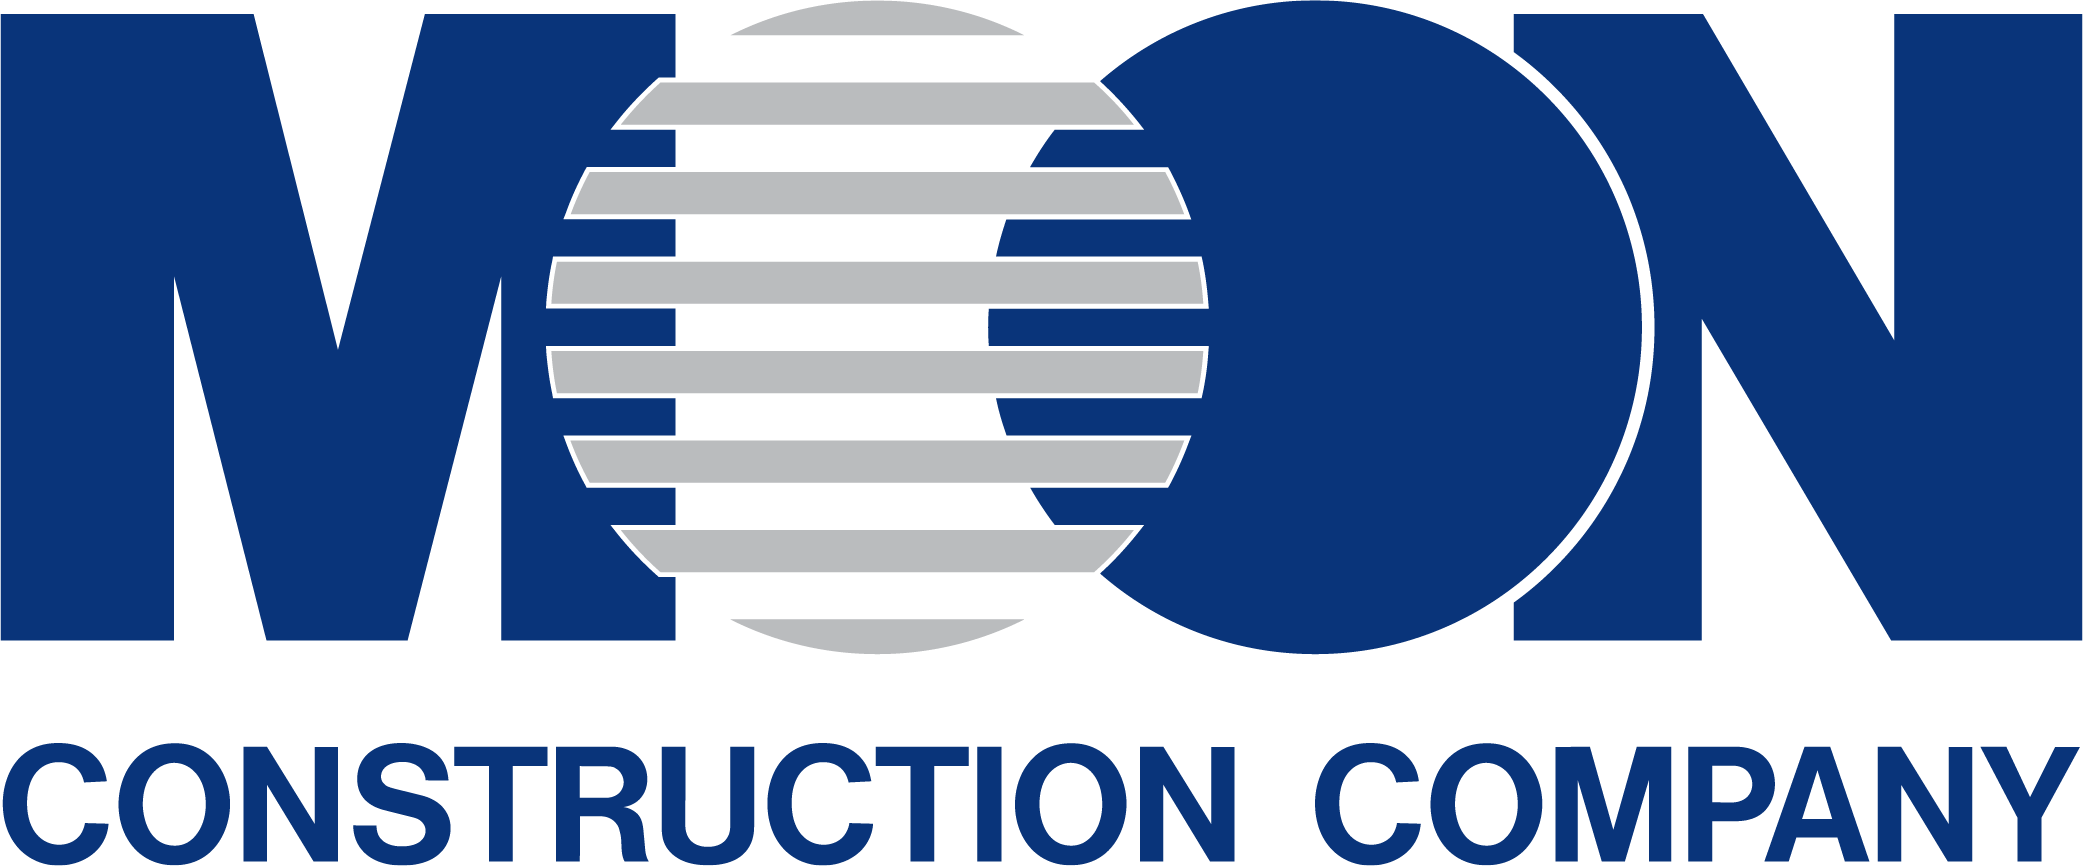 logo-moon-construction.png